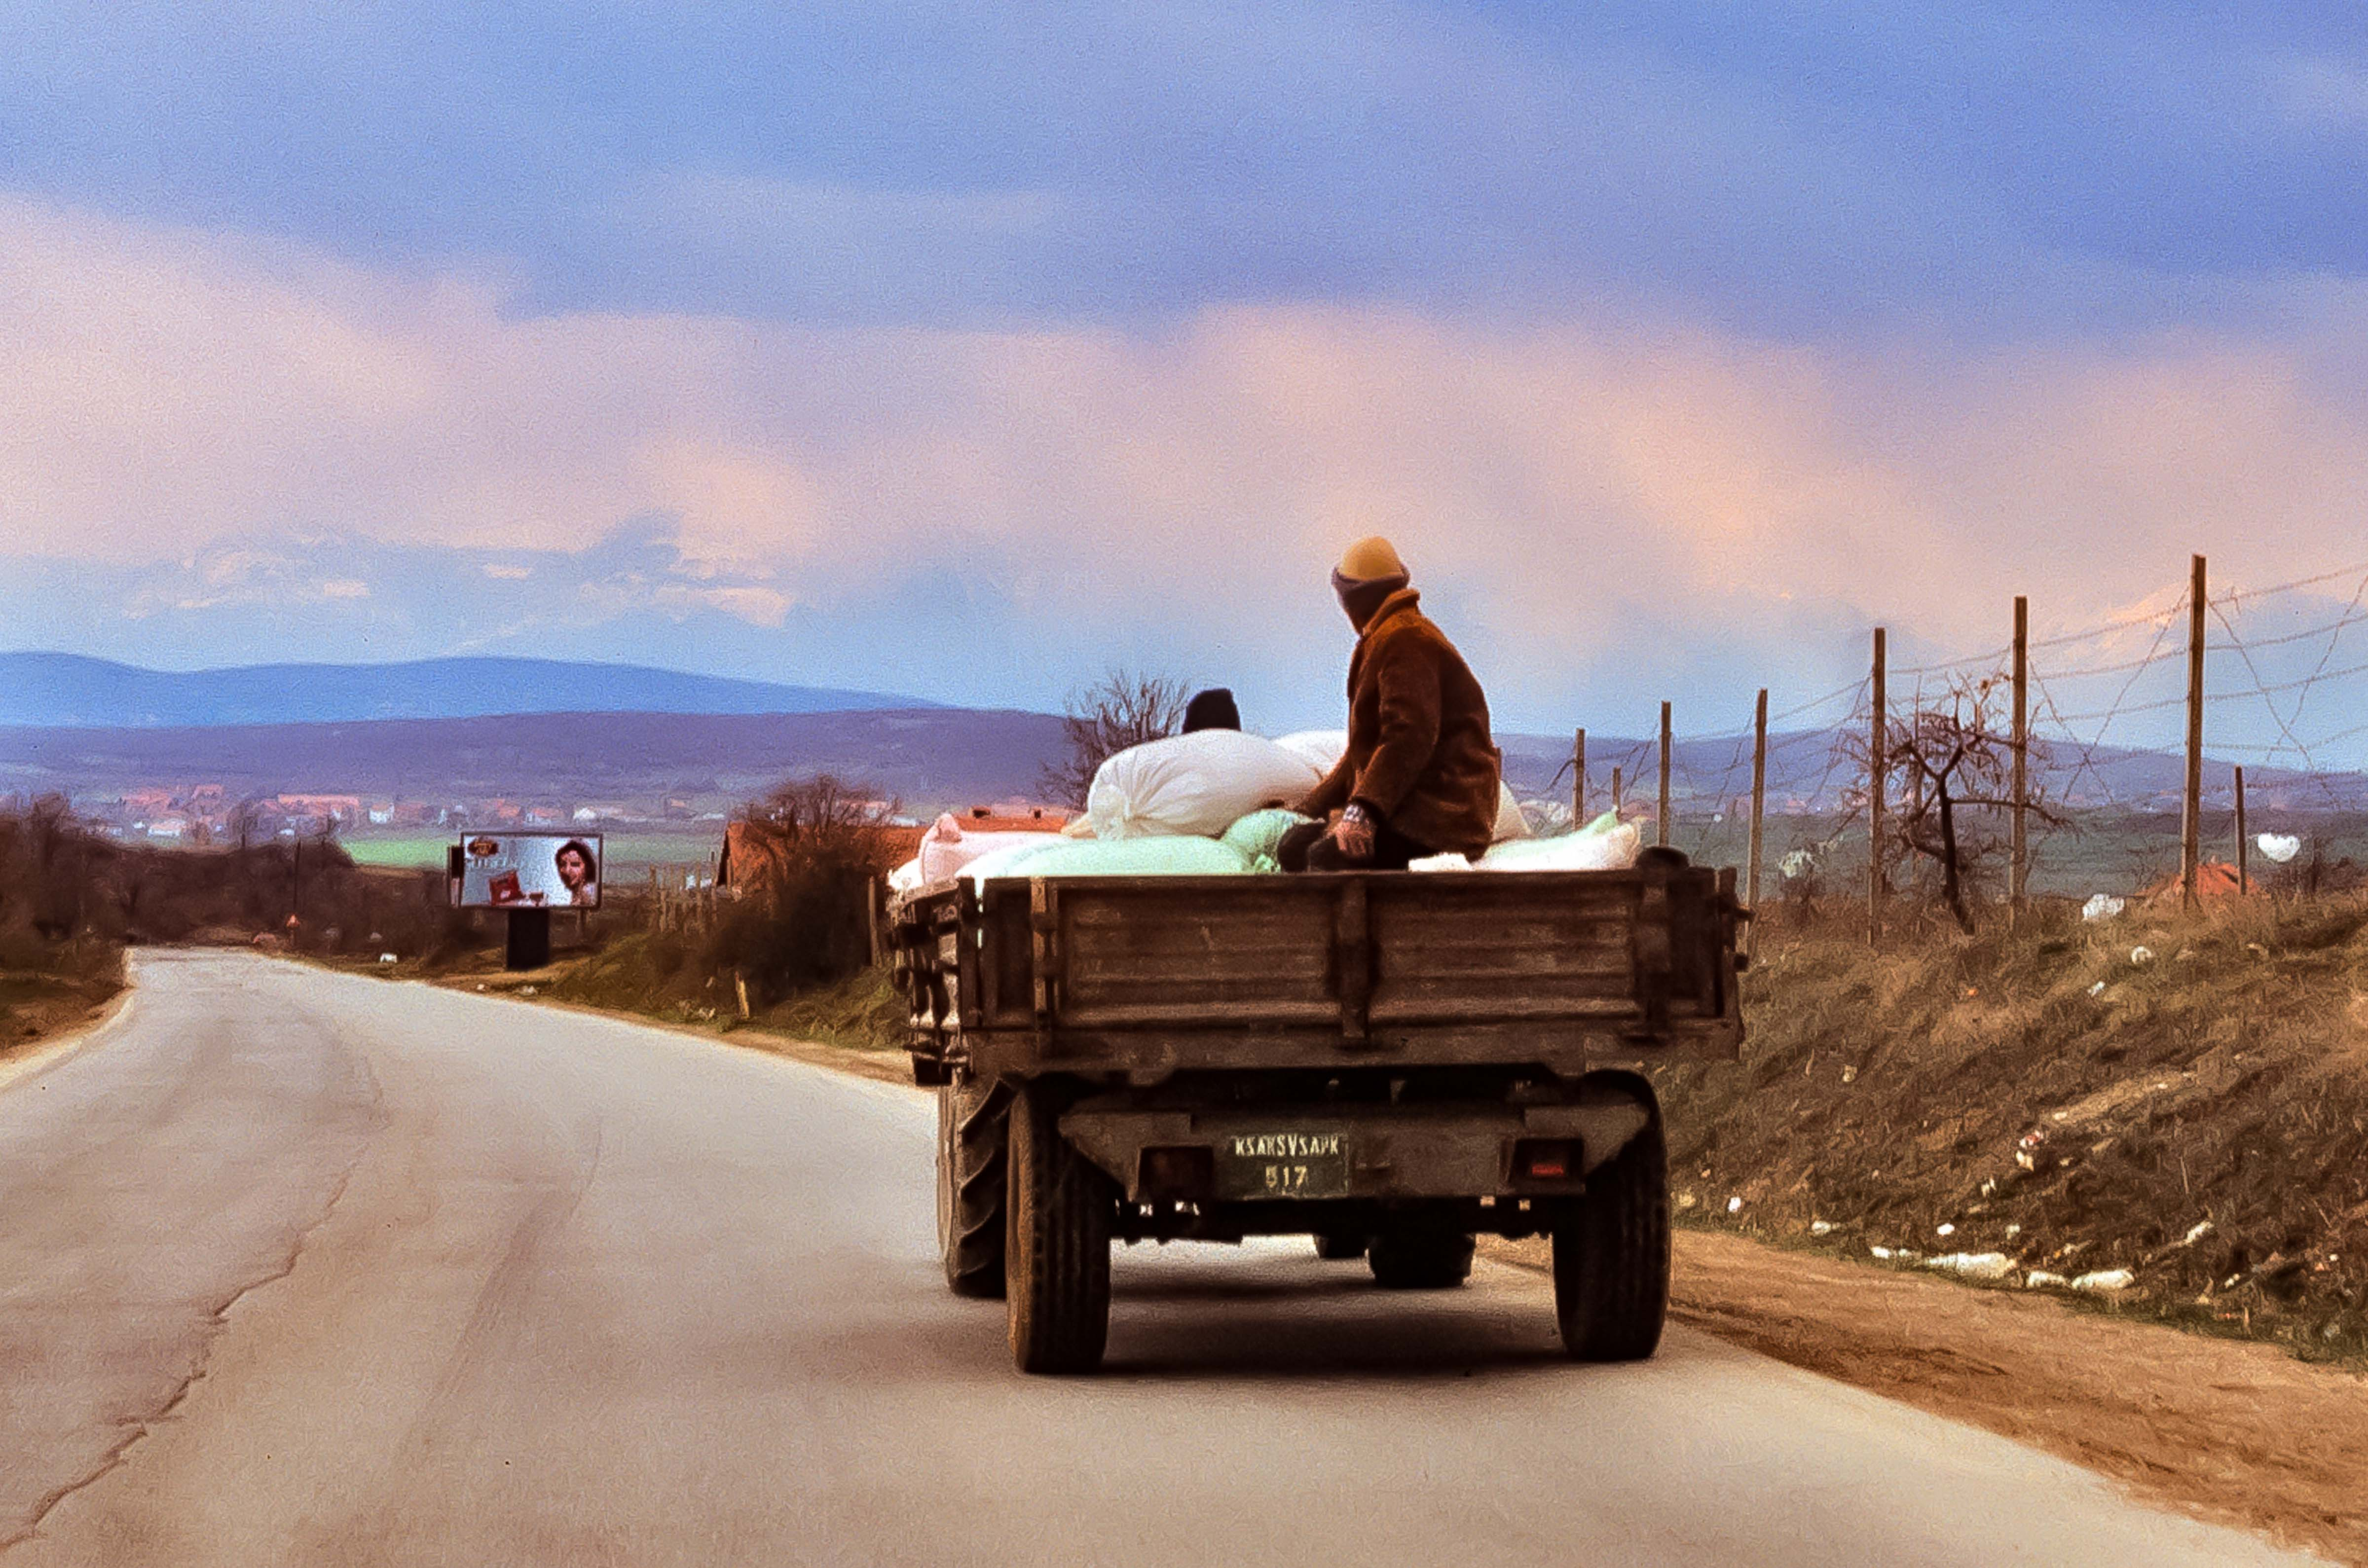 Kosovo, Riding The Back Of The Truck, 2003